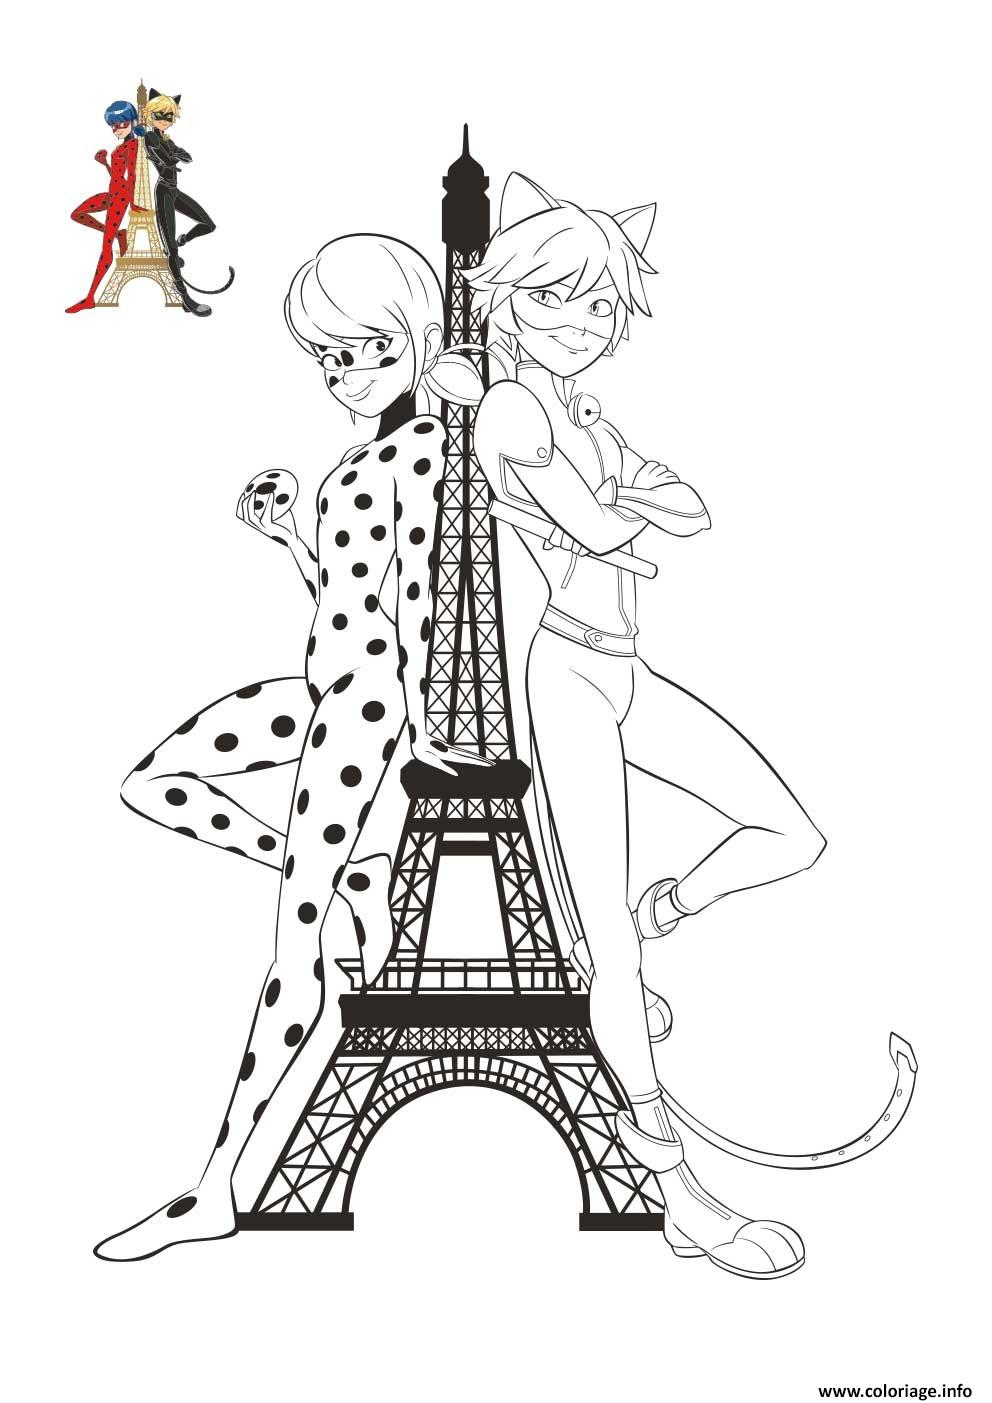 Coloriage Chat Noir Et Ladybug Tour Effeil Paris France Dessin